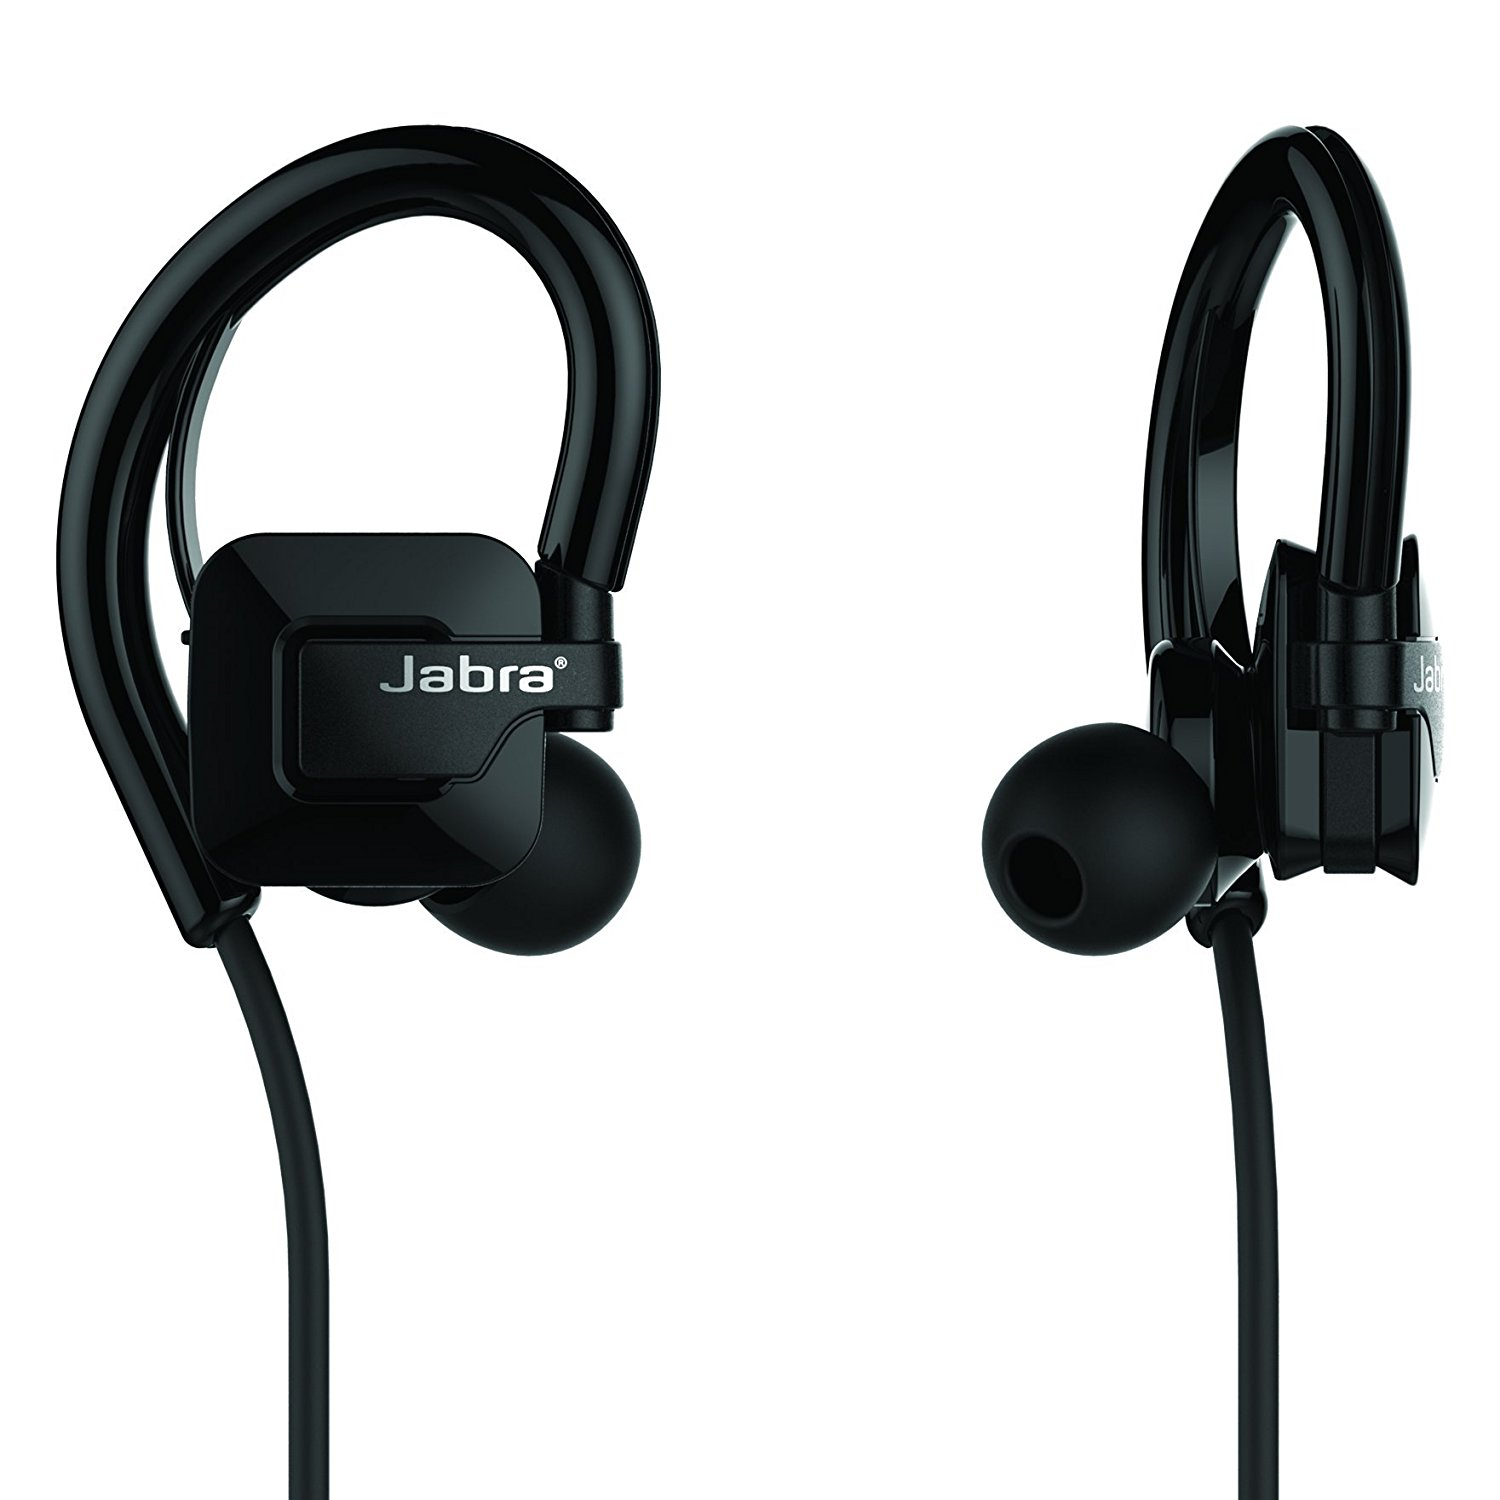 The Jabra Step Wireless Headphone Review